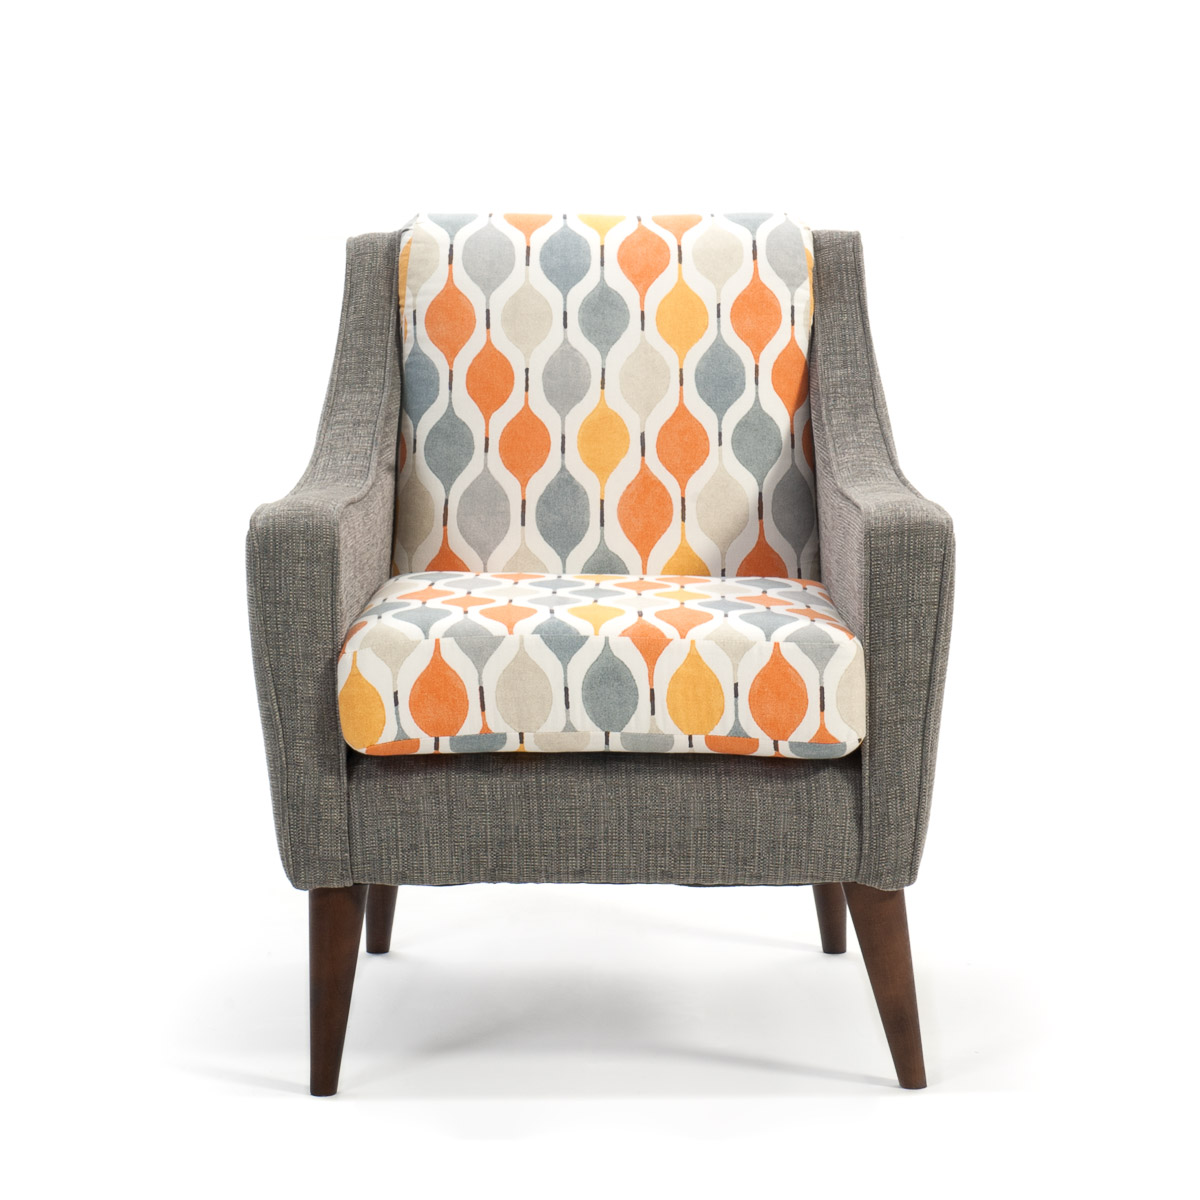 Cortland Designer Chair